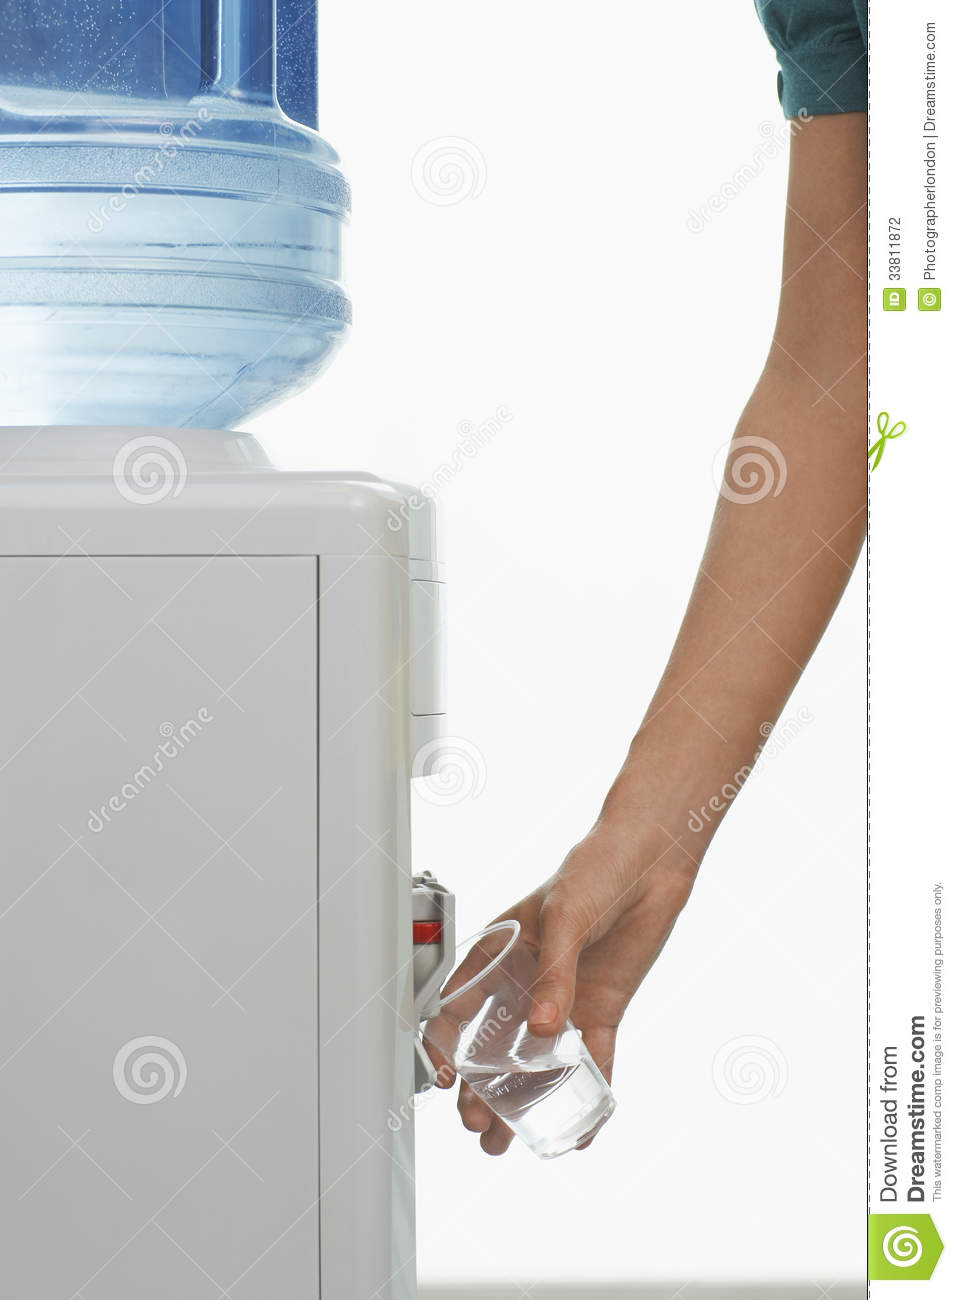 Closeup Of Hand Pouring Water From Cooler Stock Photo